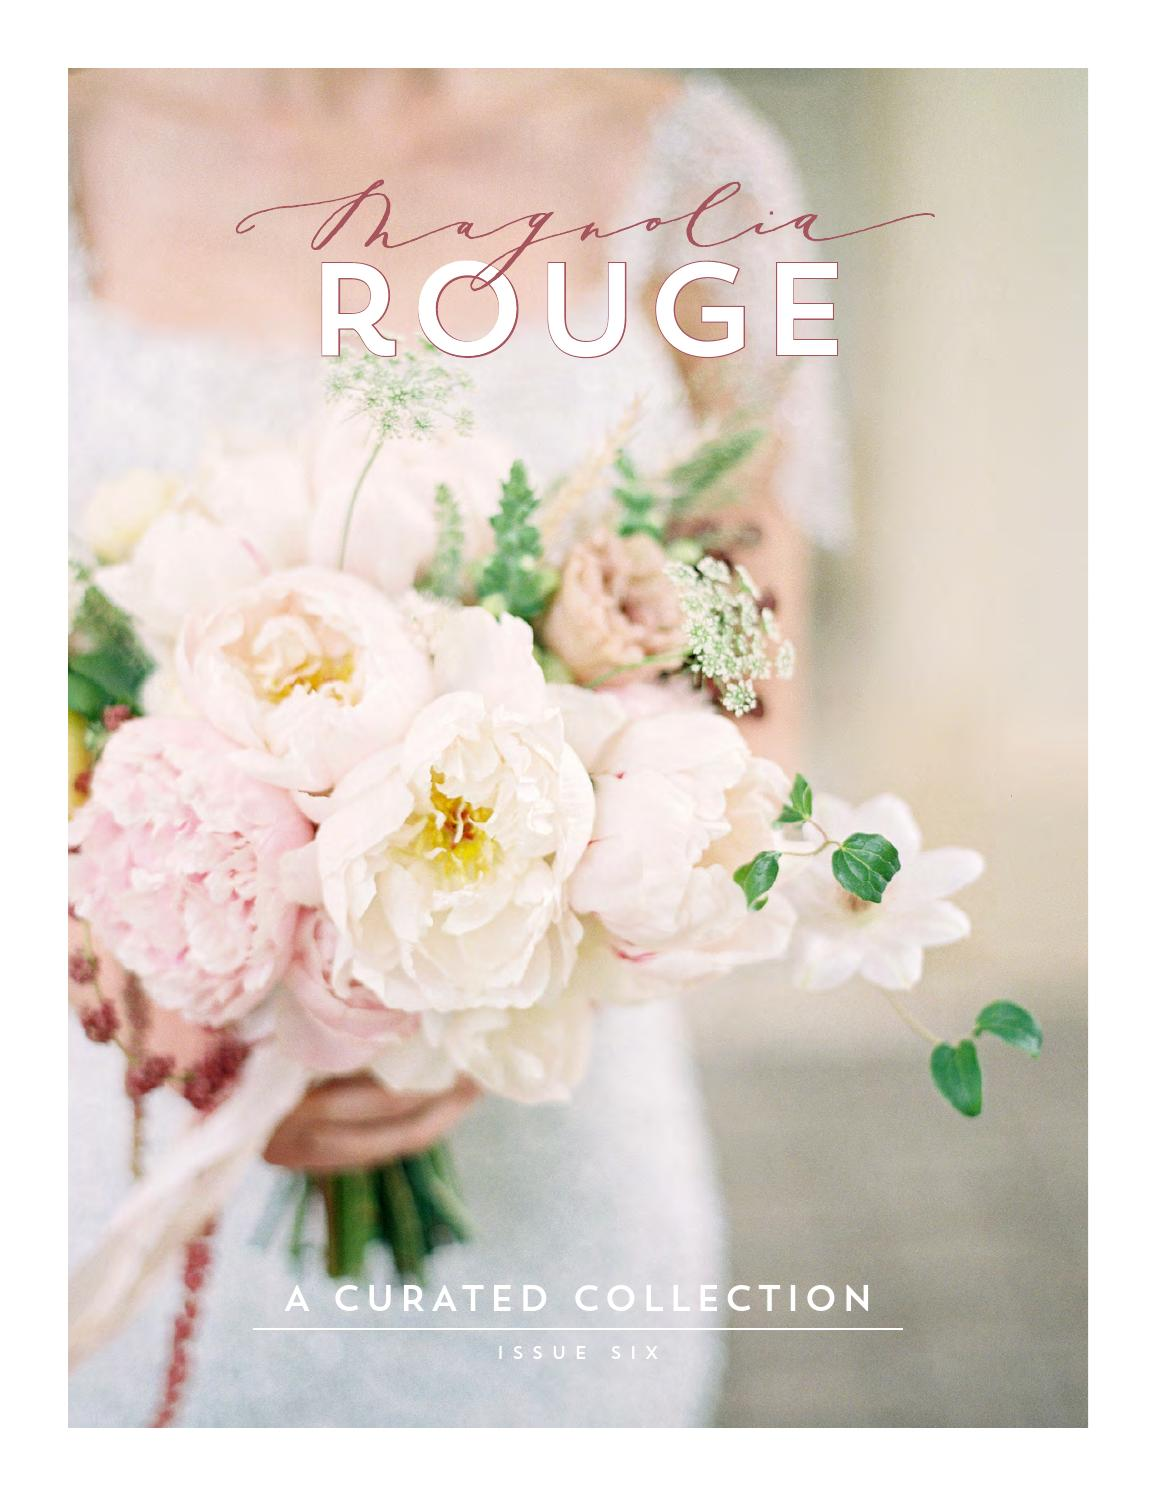 Magnolia Rouge Issue 6 by Magnolia